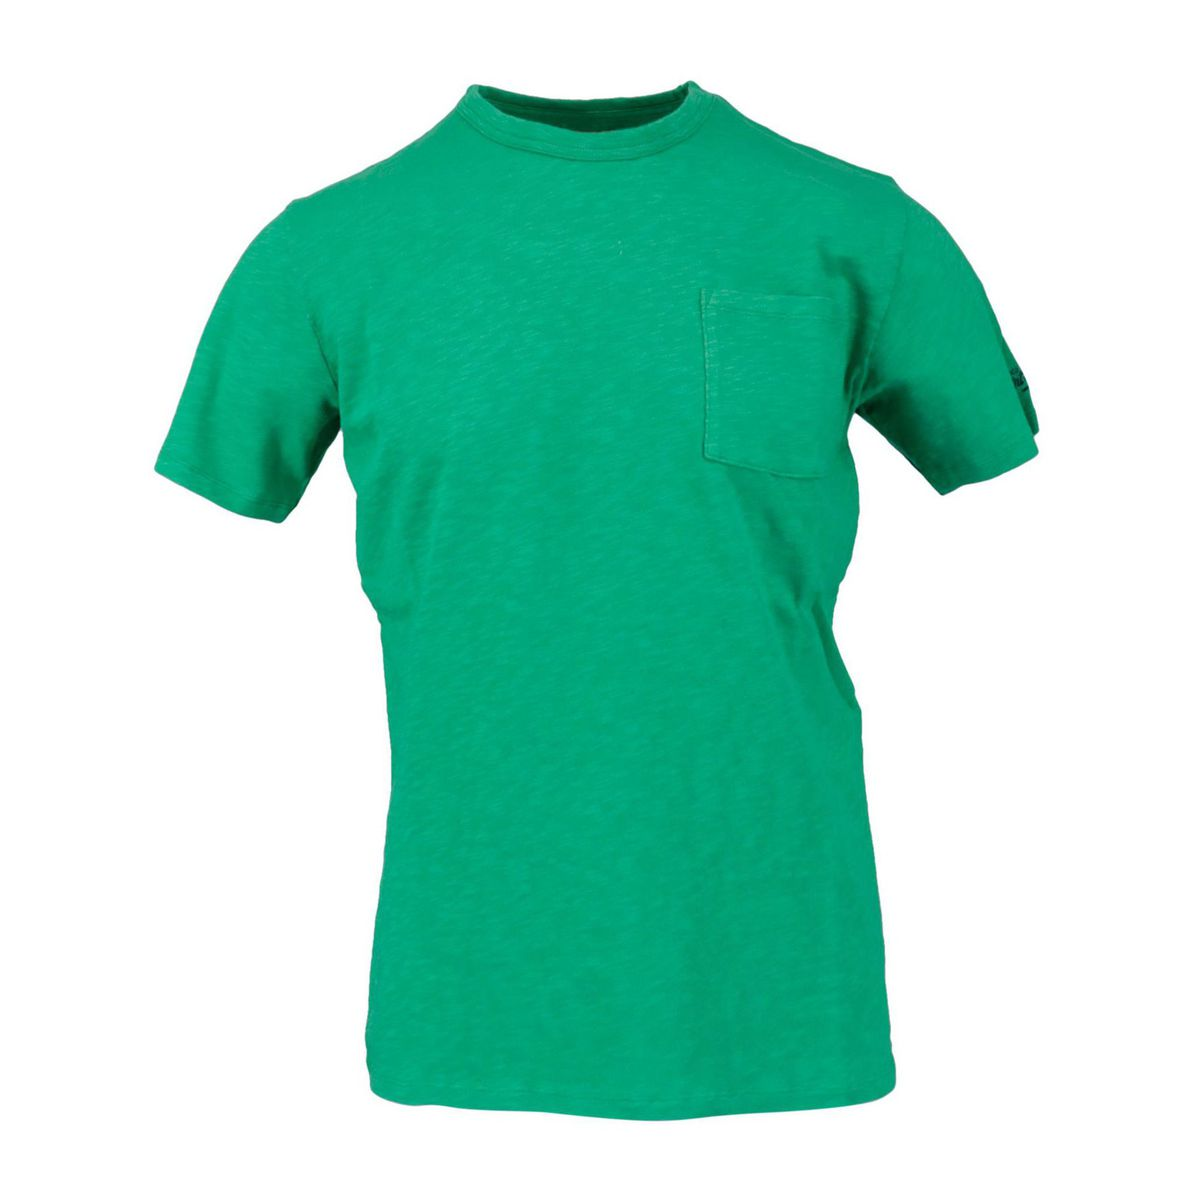 President T-shirt with pocket Menta MC2 Saint Barth